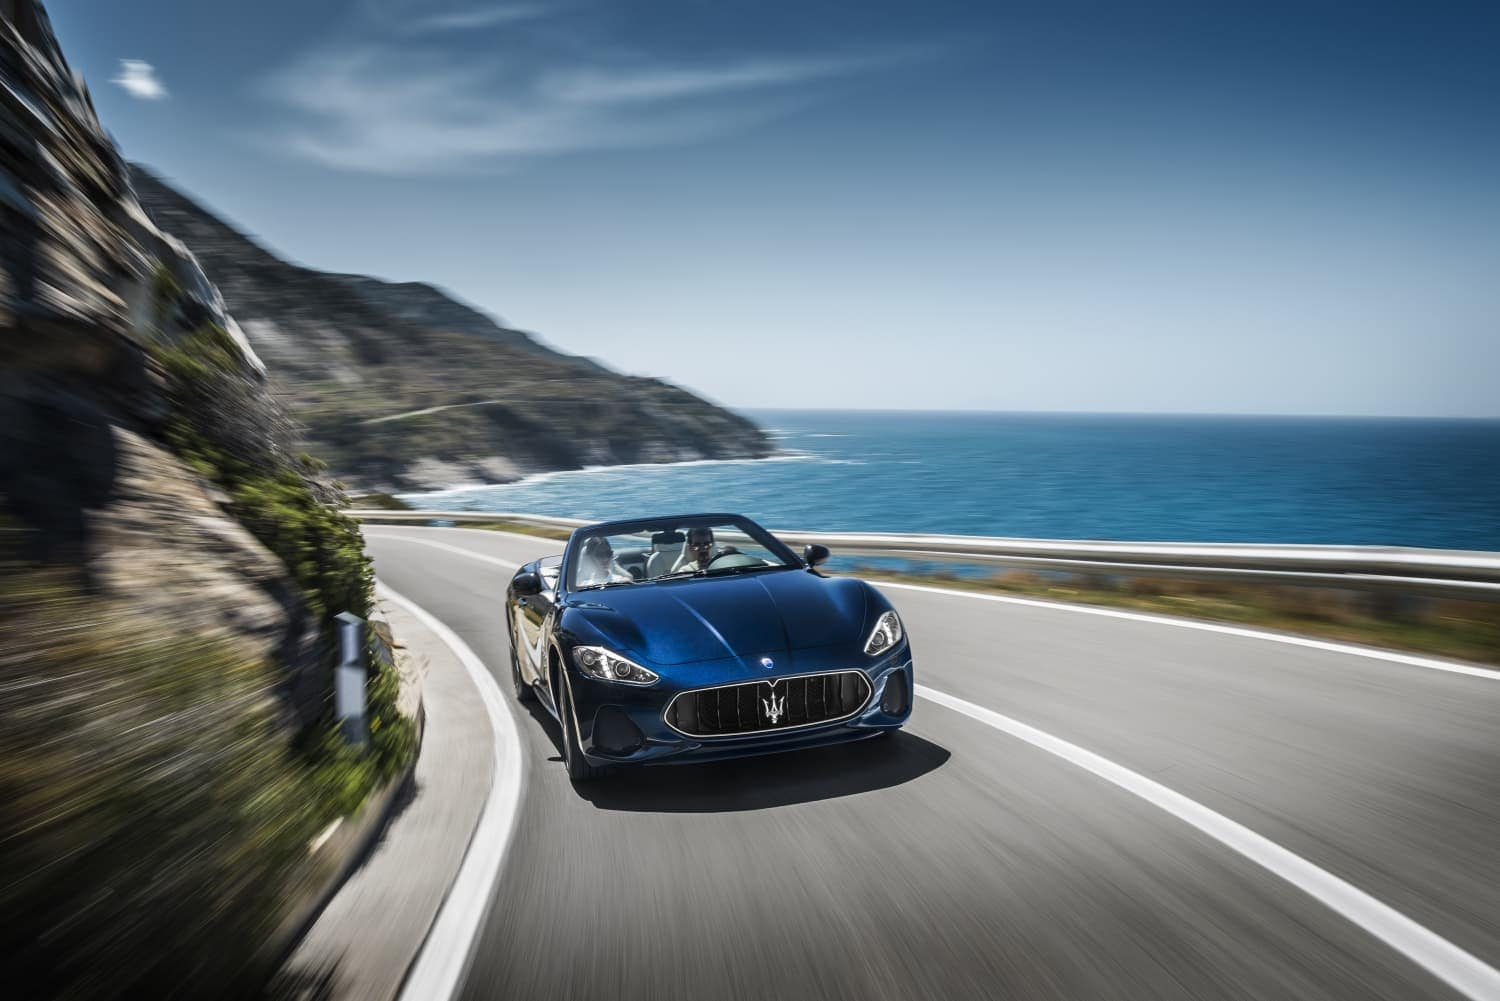 2019 Maserati GranTurismo Convertible in blue driving down curve